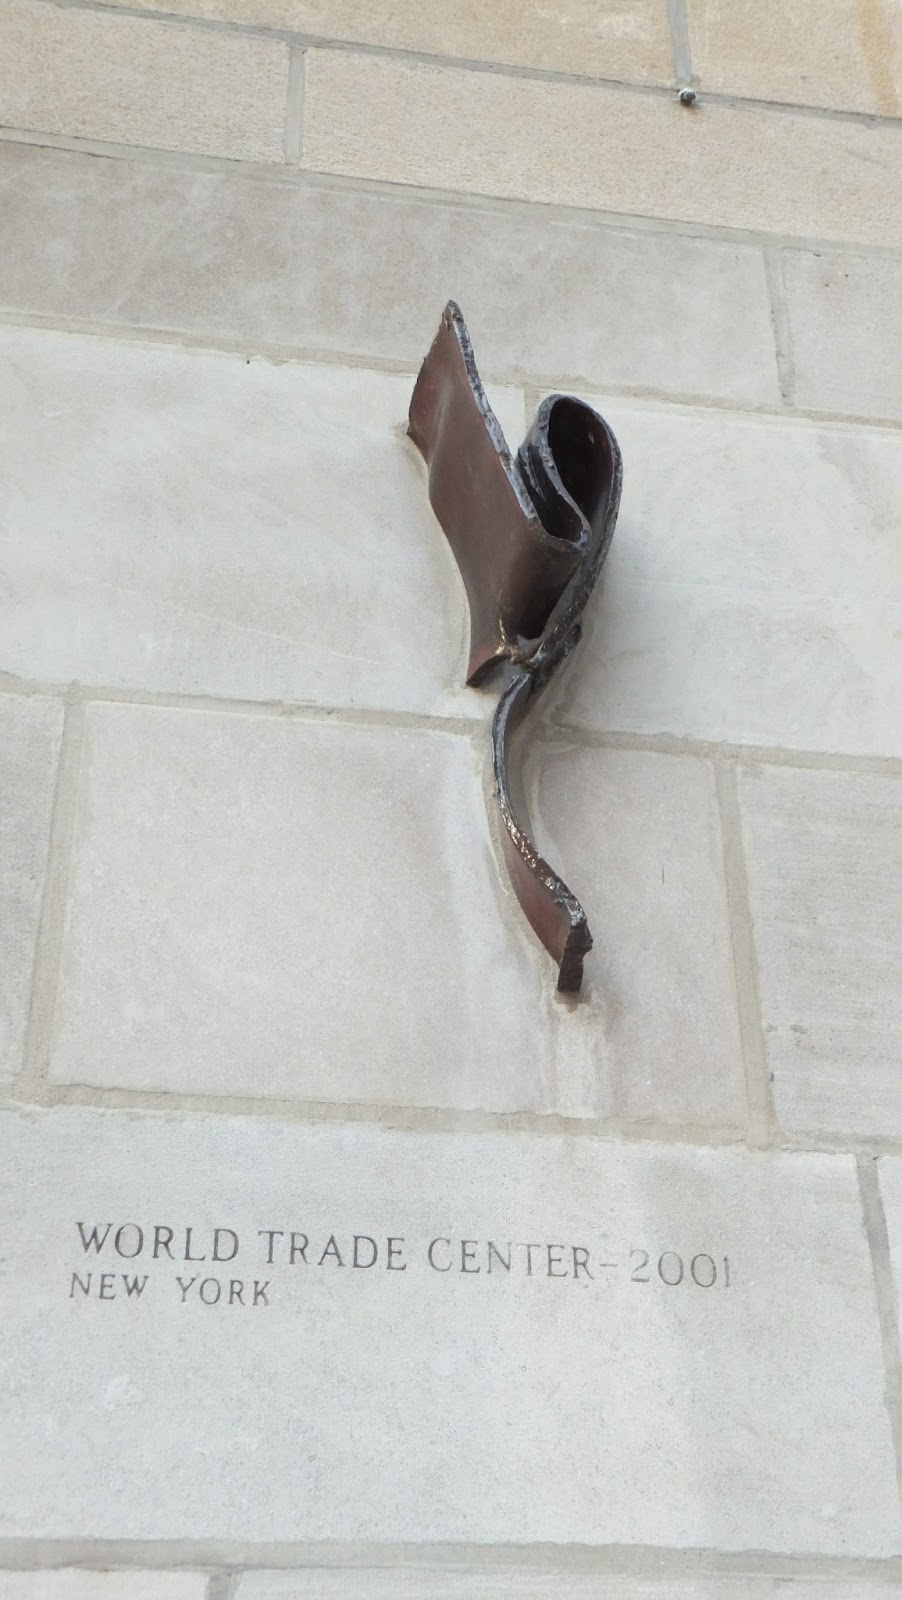 World Trade Center, Muro del Chicago Tribune